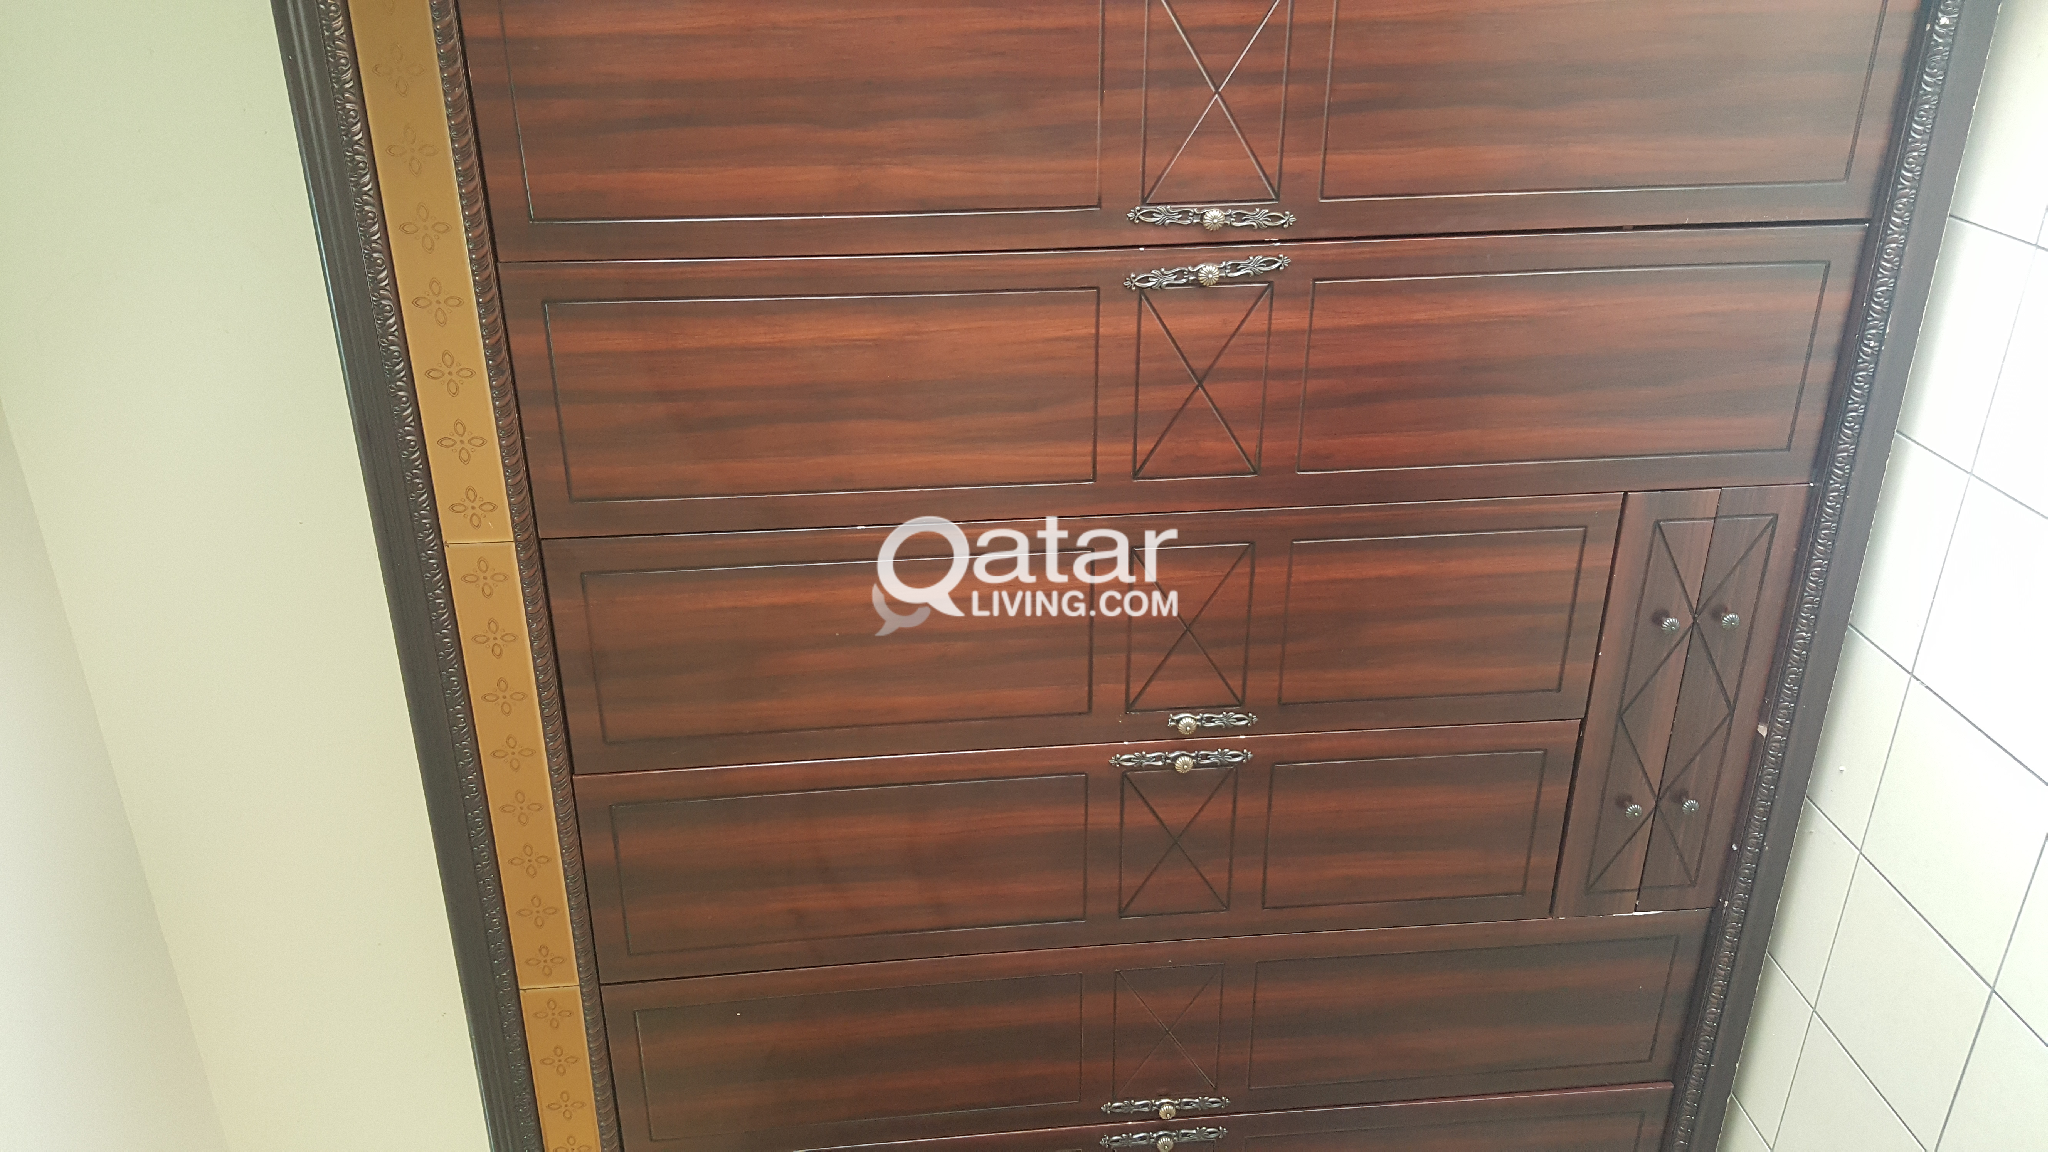 6 Doors wardrobe for Sale QR 450